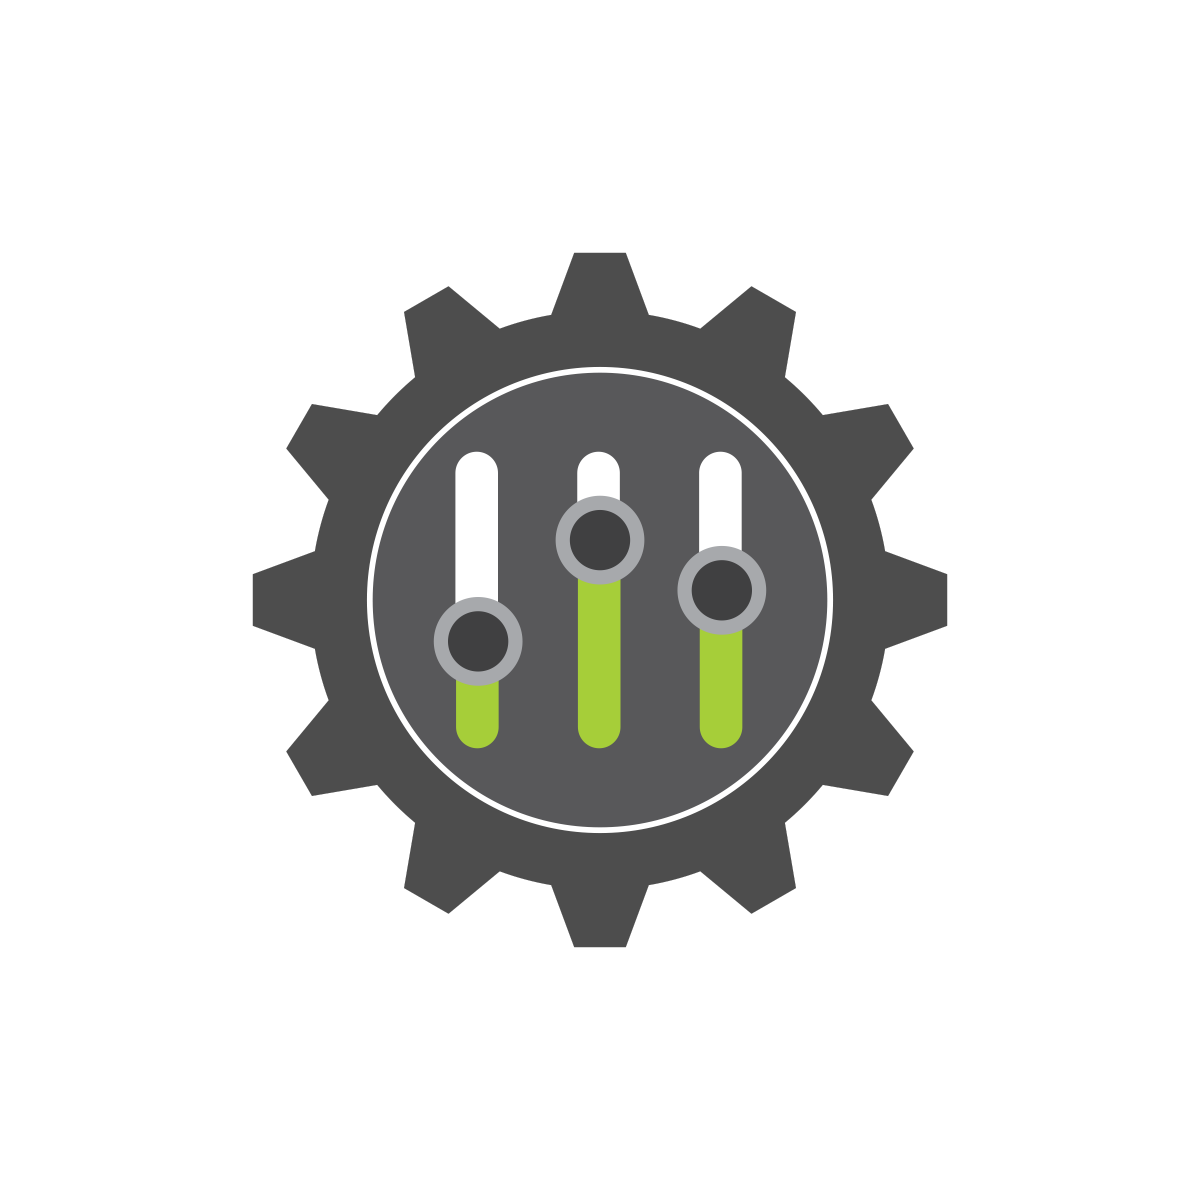 Orcid gear image symbolizing. Trust clipart respect symbol